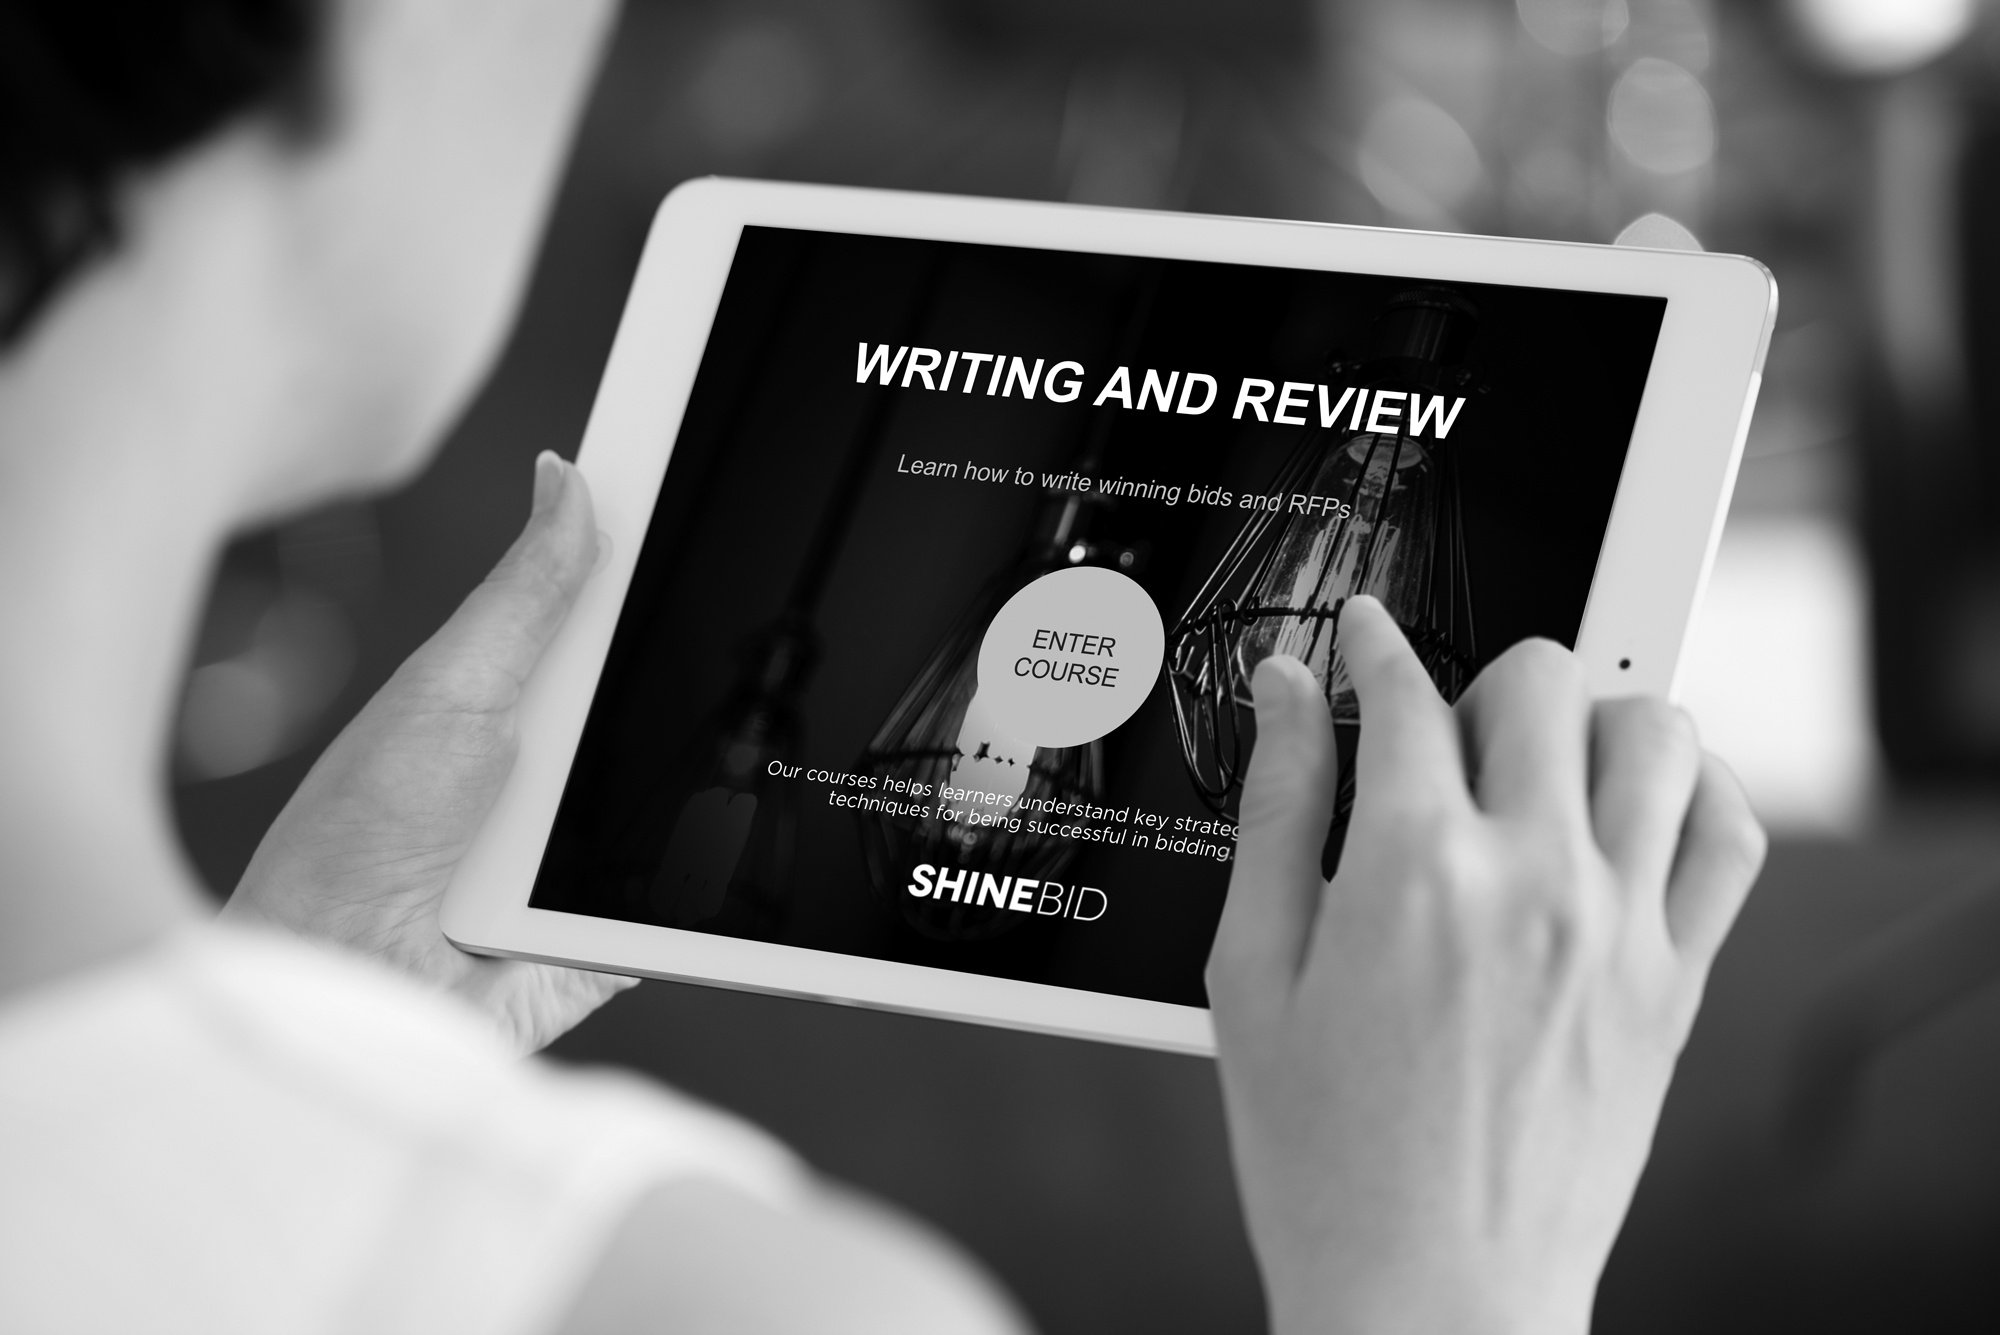 Writing and Review Module